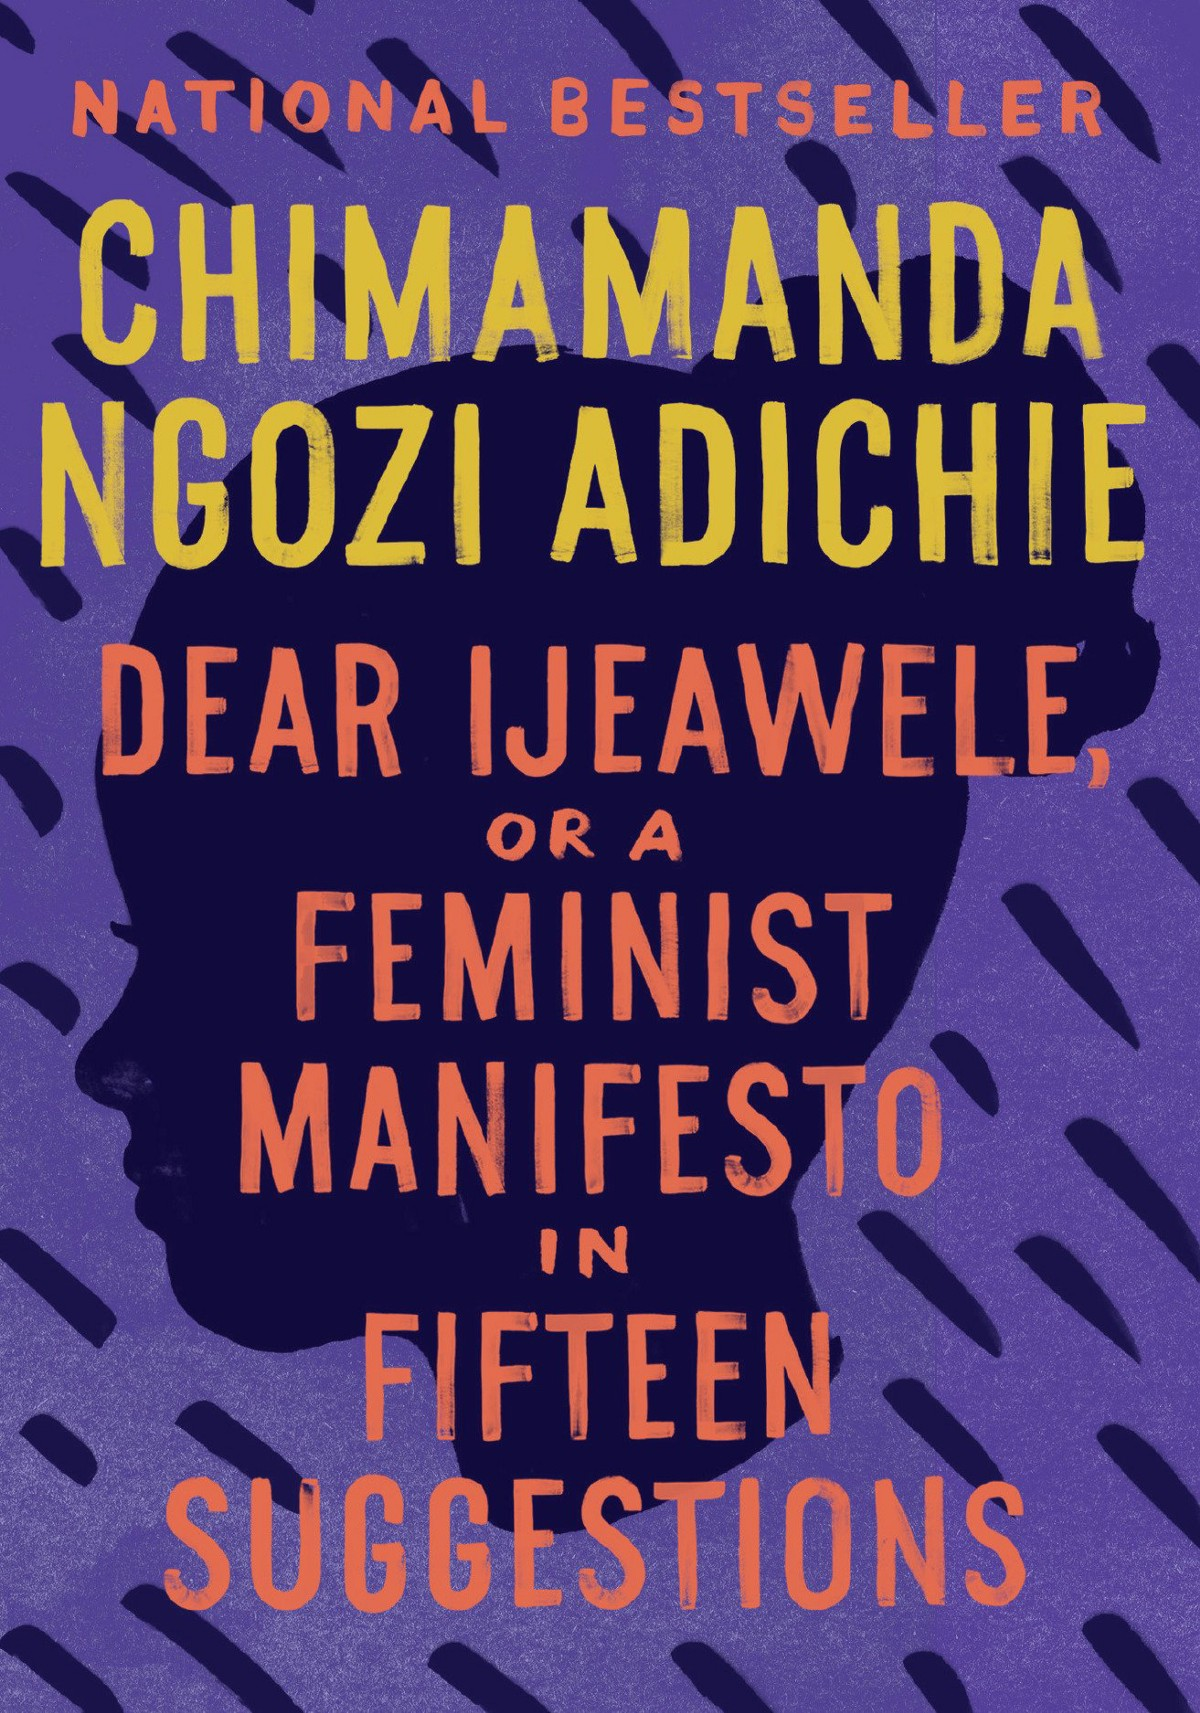 """Review of """"Dear Ijeawele"""" or a Feminist Manifesto in Fifteen Suggestions. By Chimamanda Adichie."""